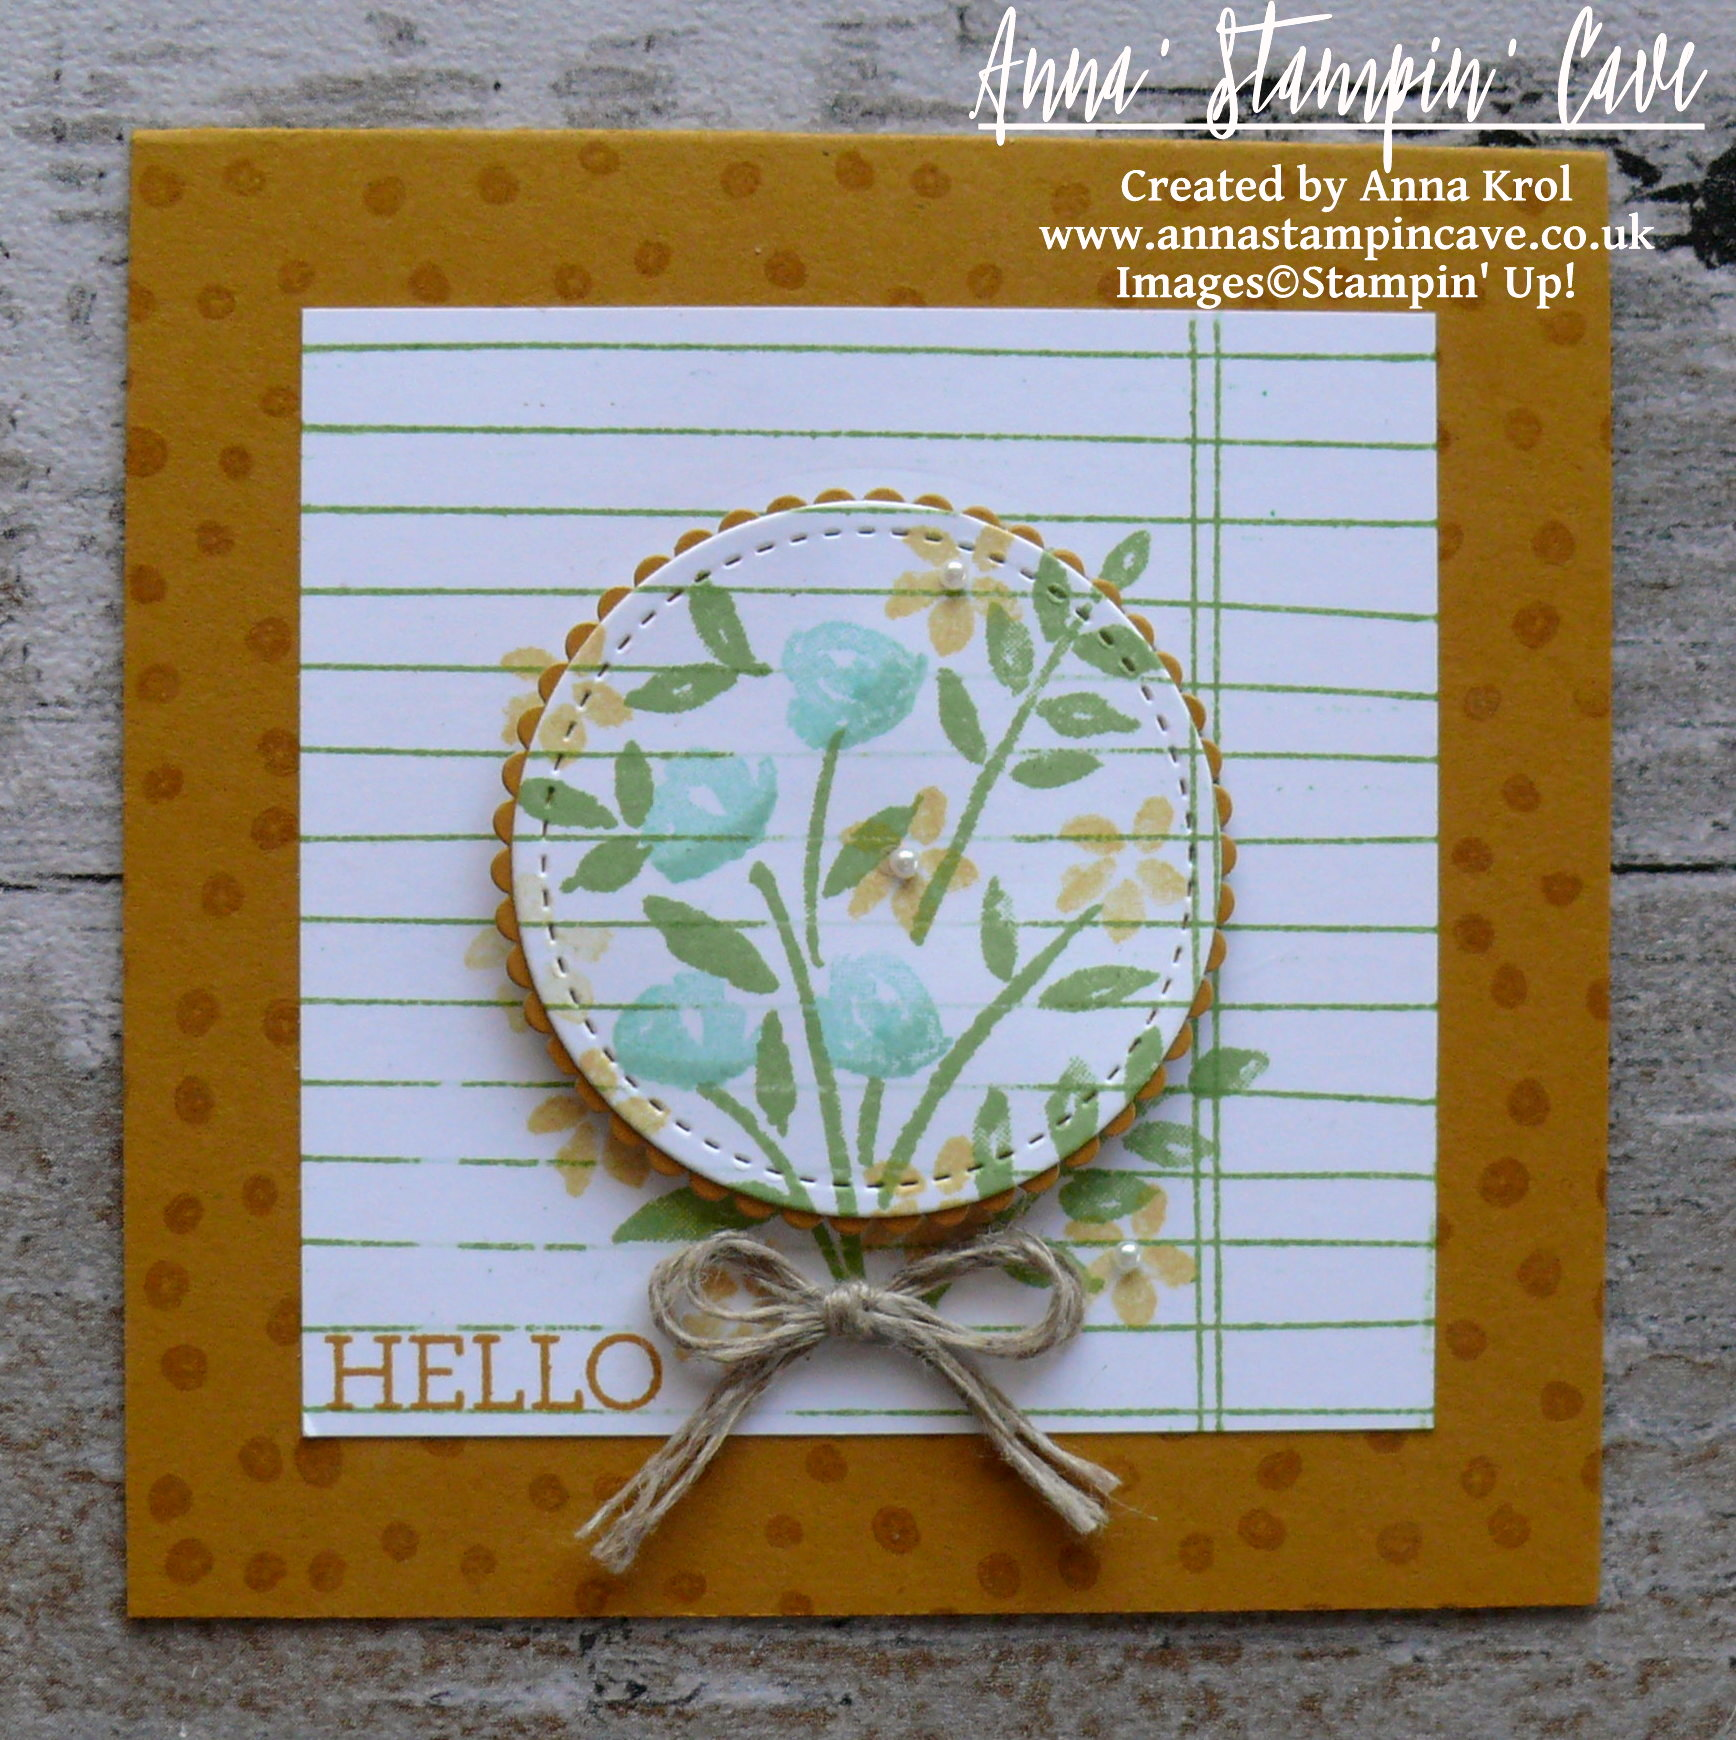 Anna' Stampin' Cave - Stampin' Up! Number Of Years Stamp Set - Hello Spring Delightful Dijon Notecard.JPG